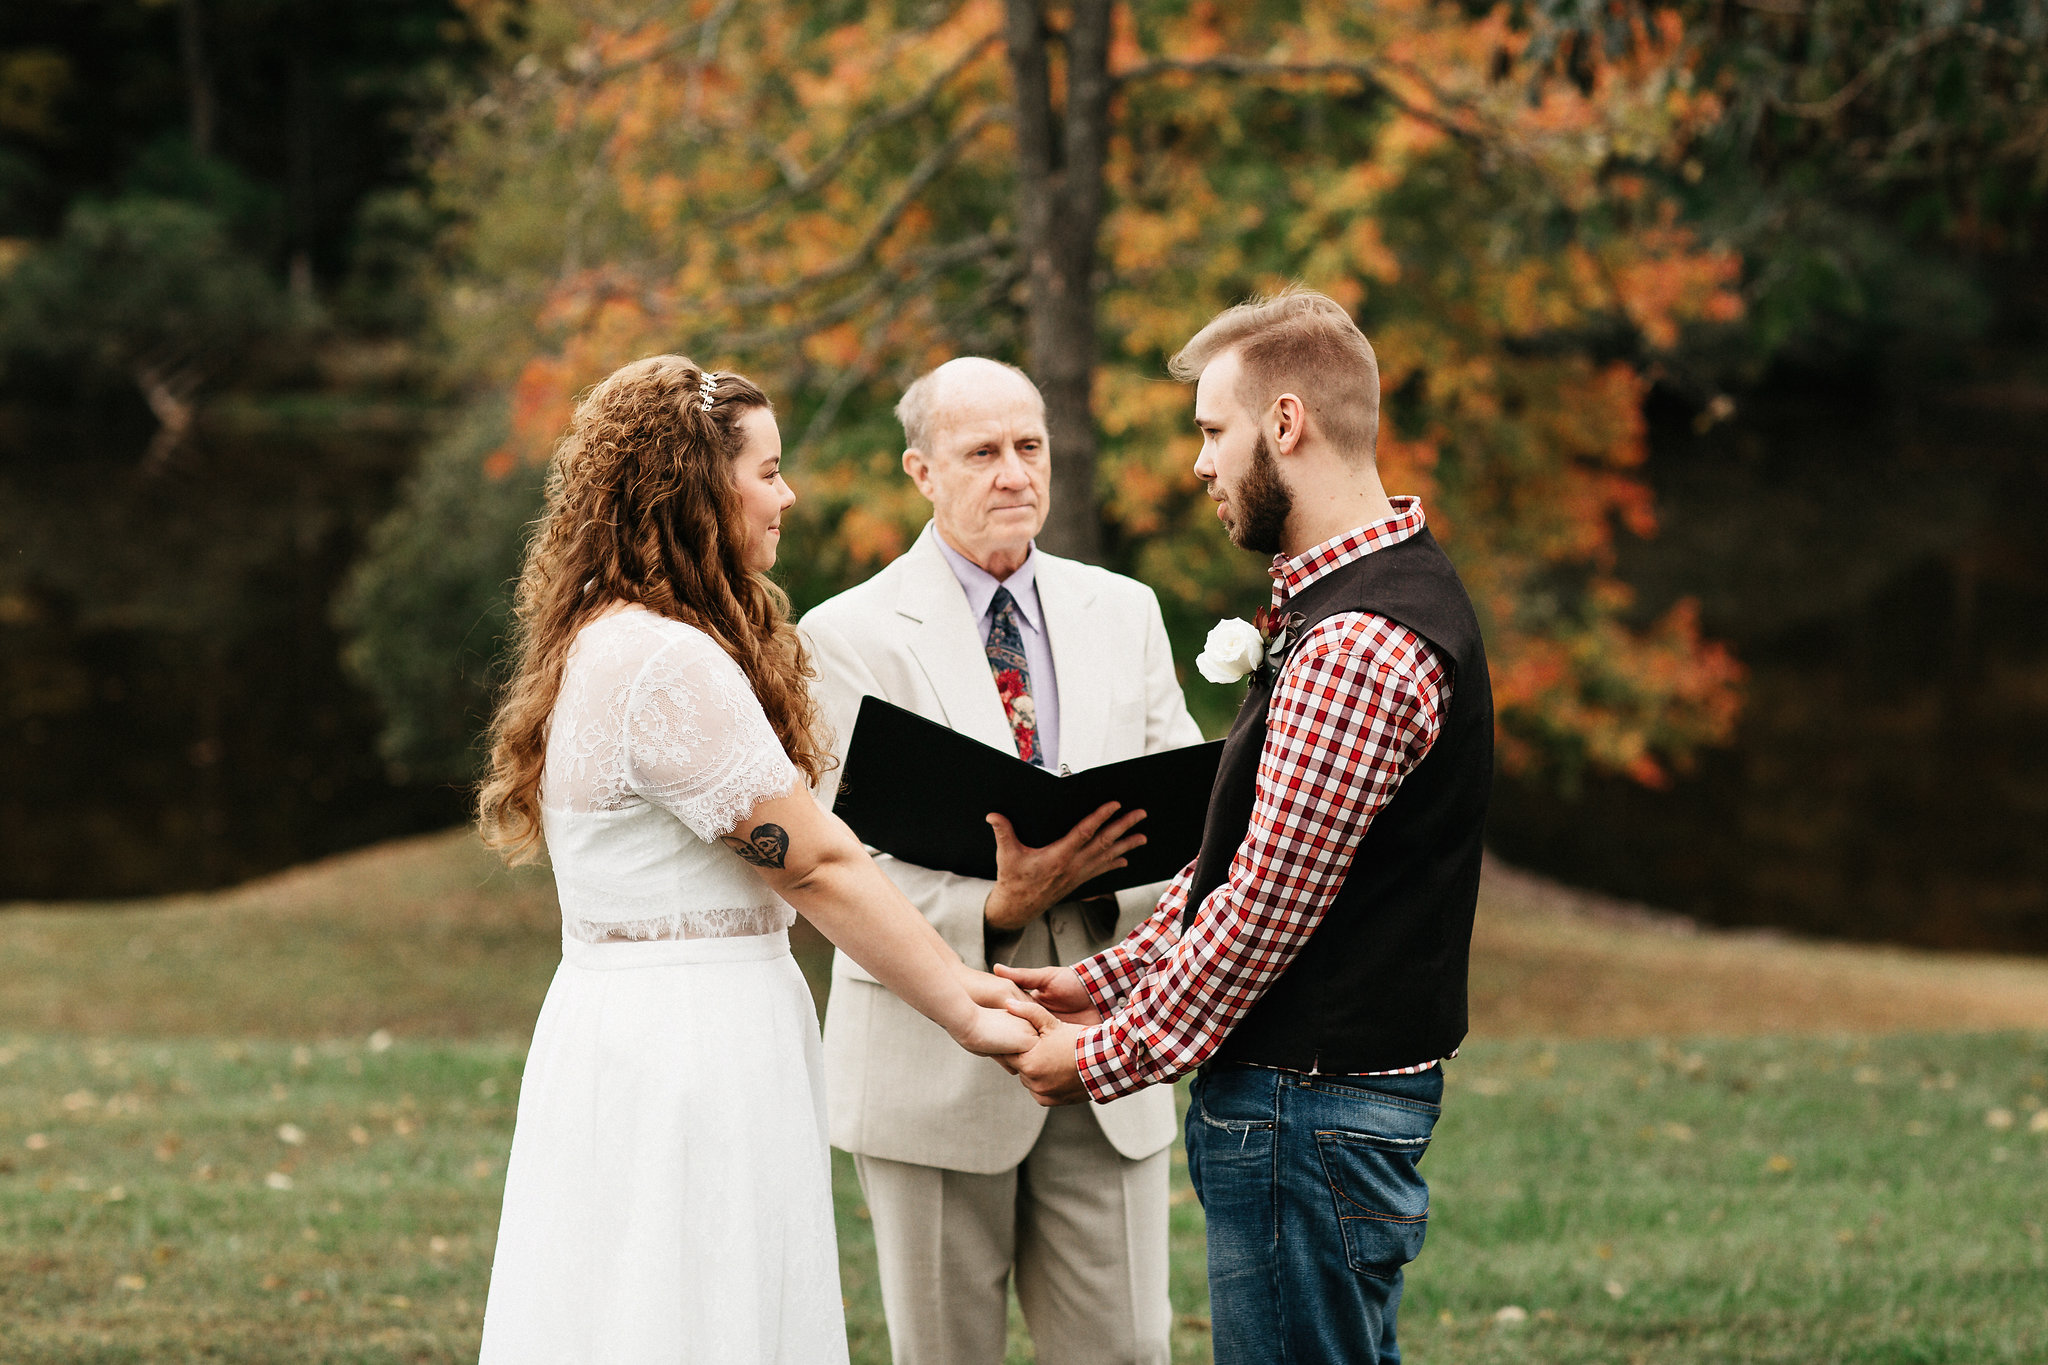 Caitlin&CodyMarried2017-11-03at19.19.37PM48.jpg